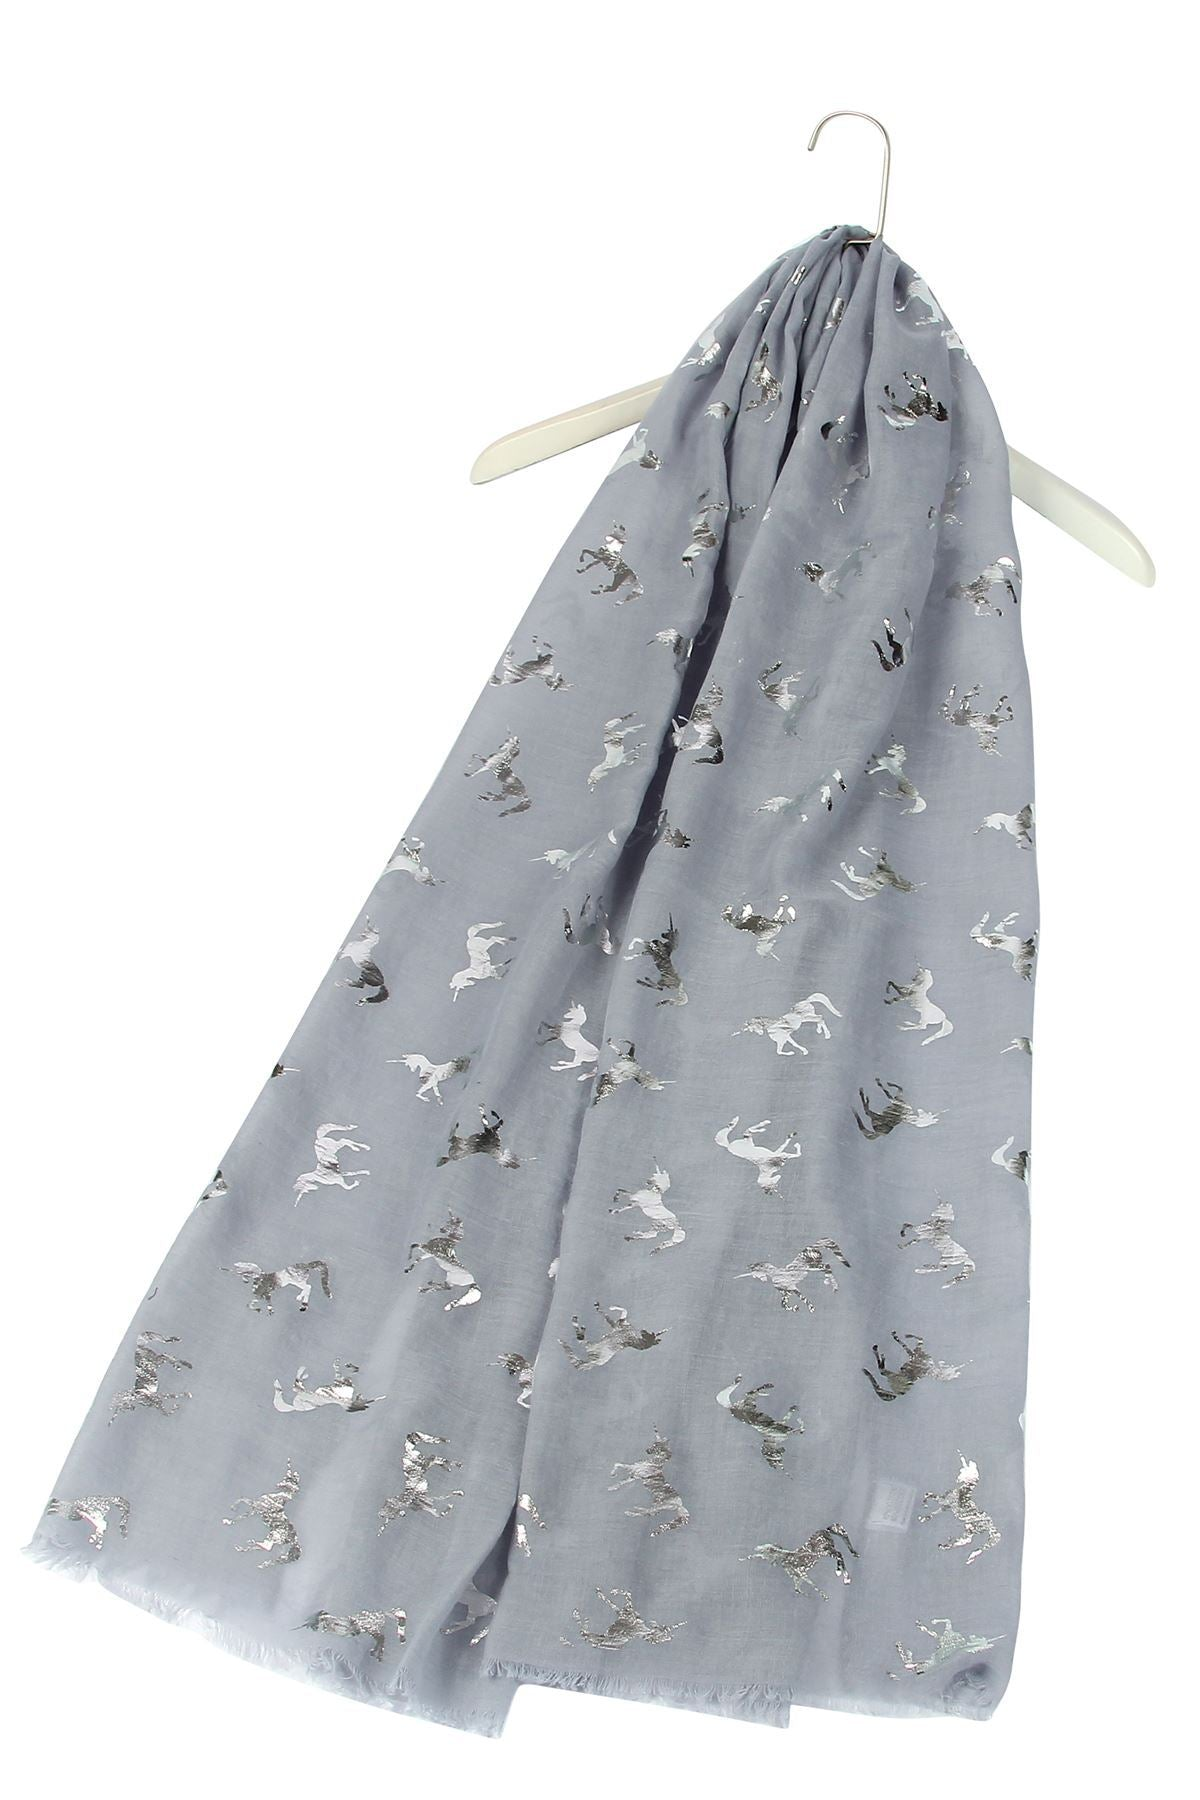 Silver Unicorn Pattern Grey Scarf